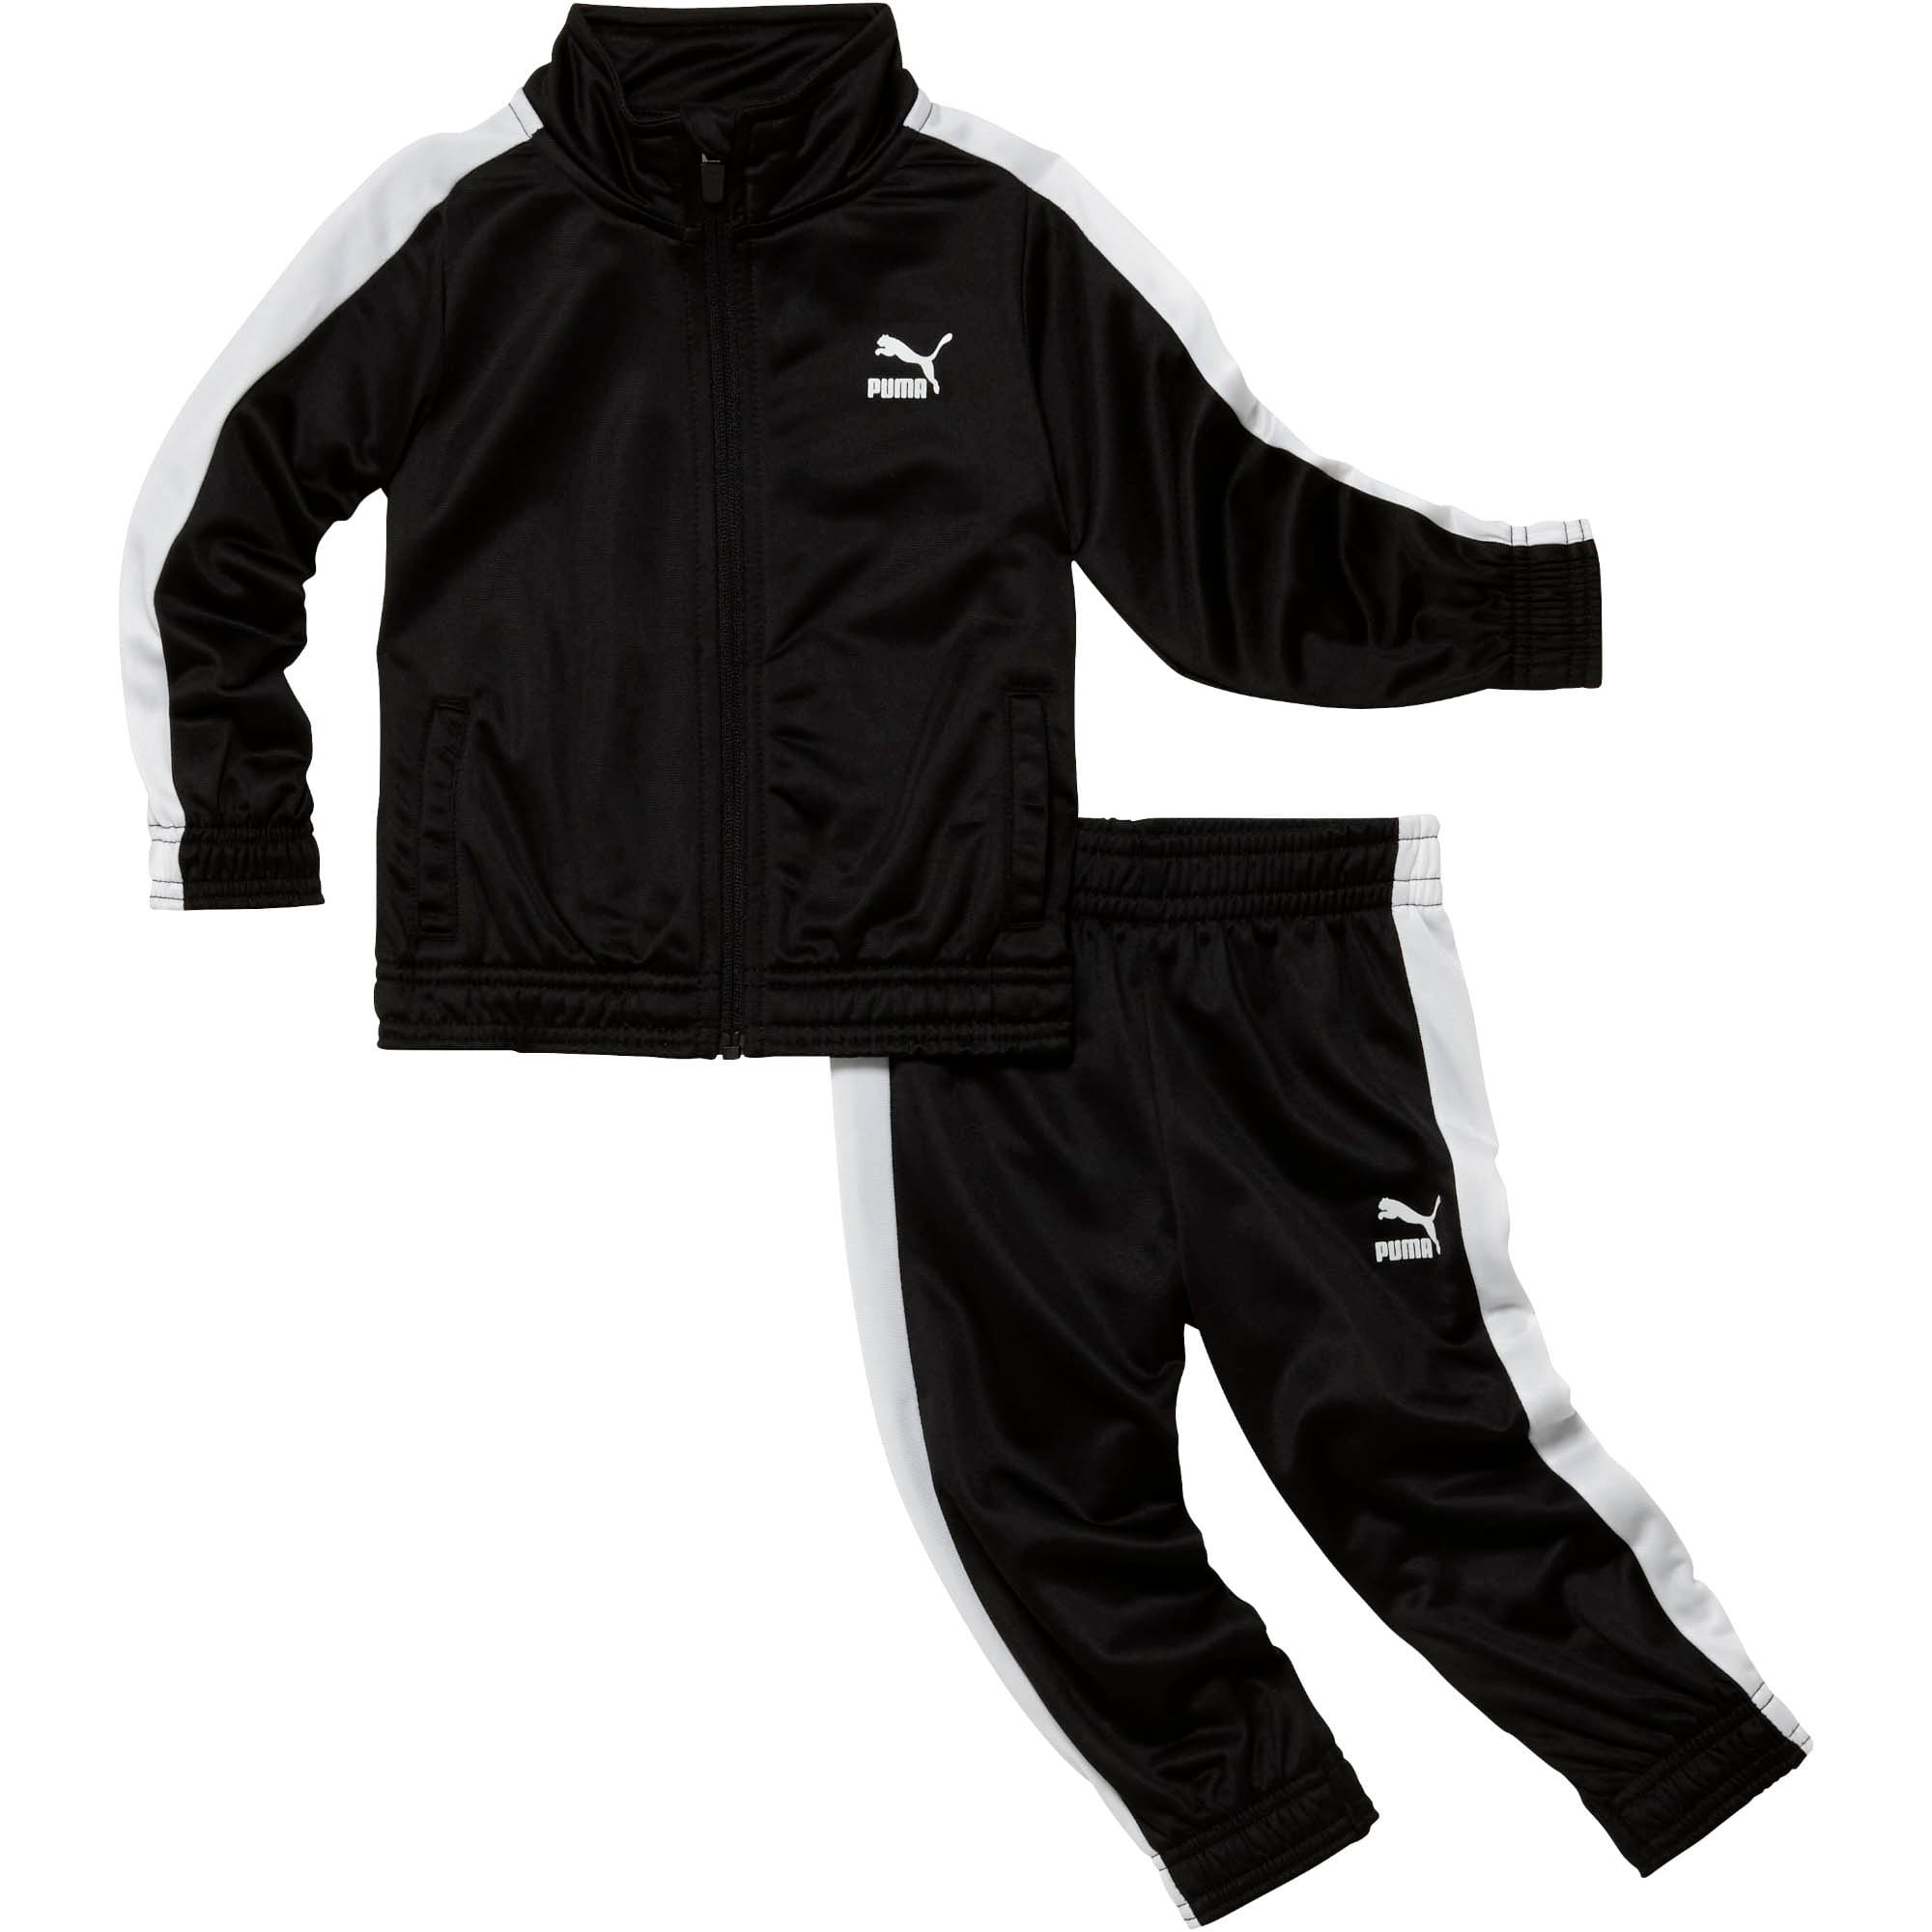 Thumbnail 1 of Infant + Toddler Tracksuit Set, PUMA BLACK, medium